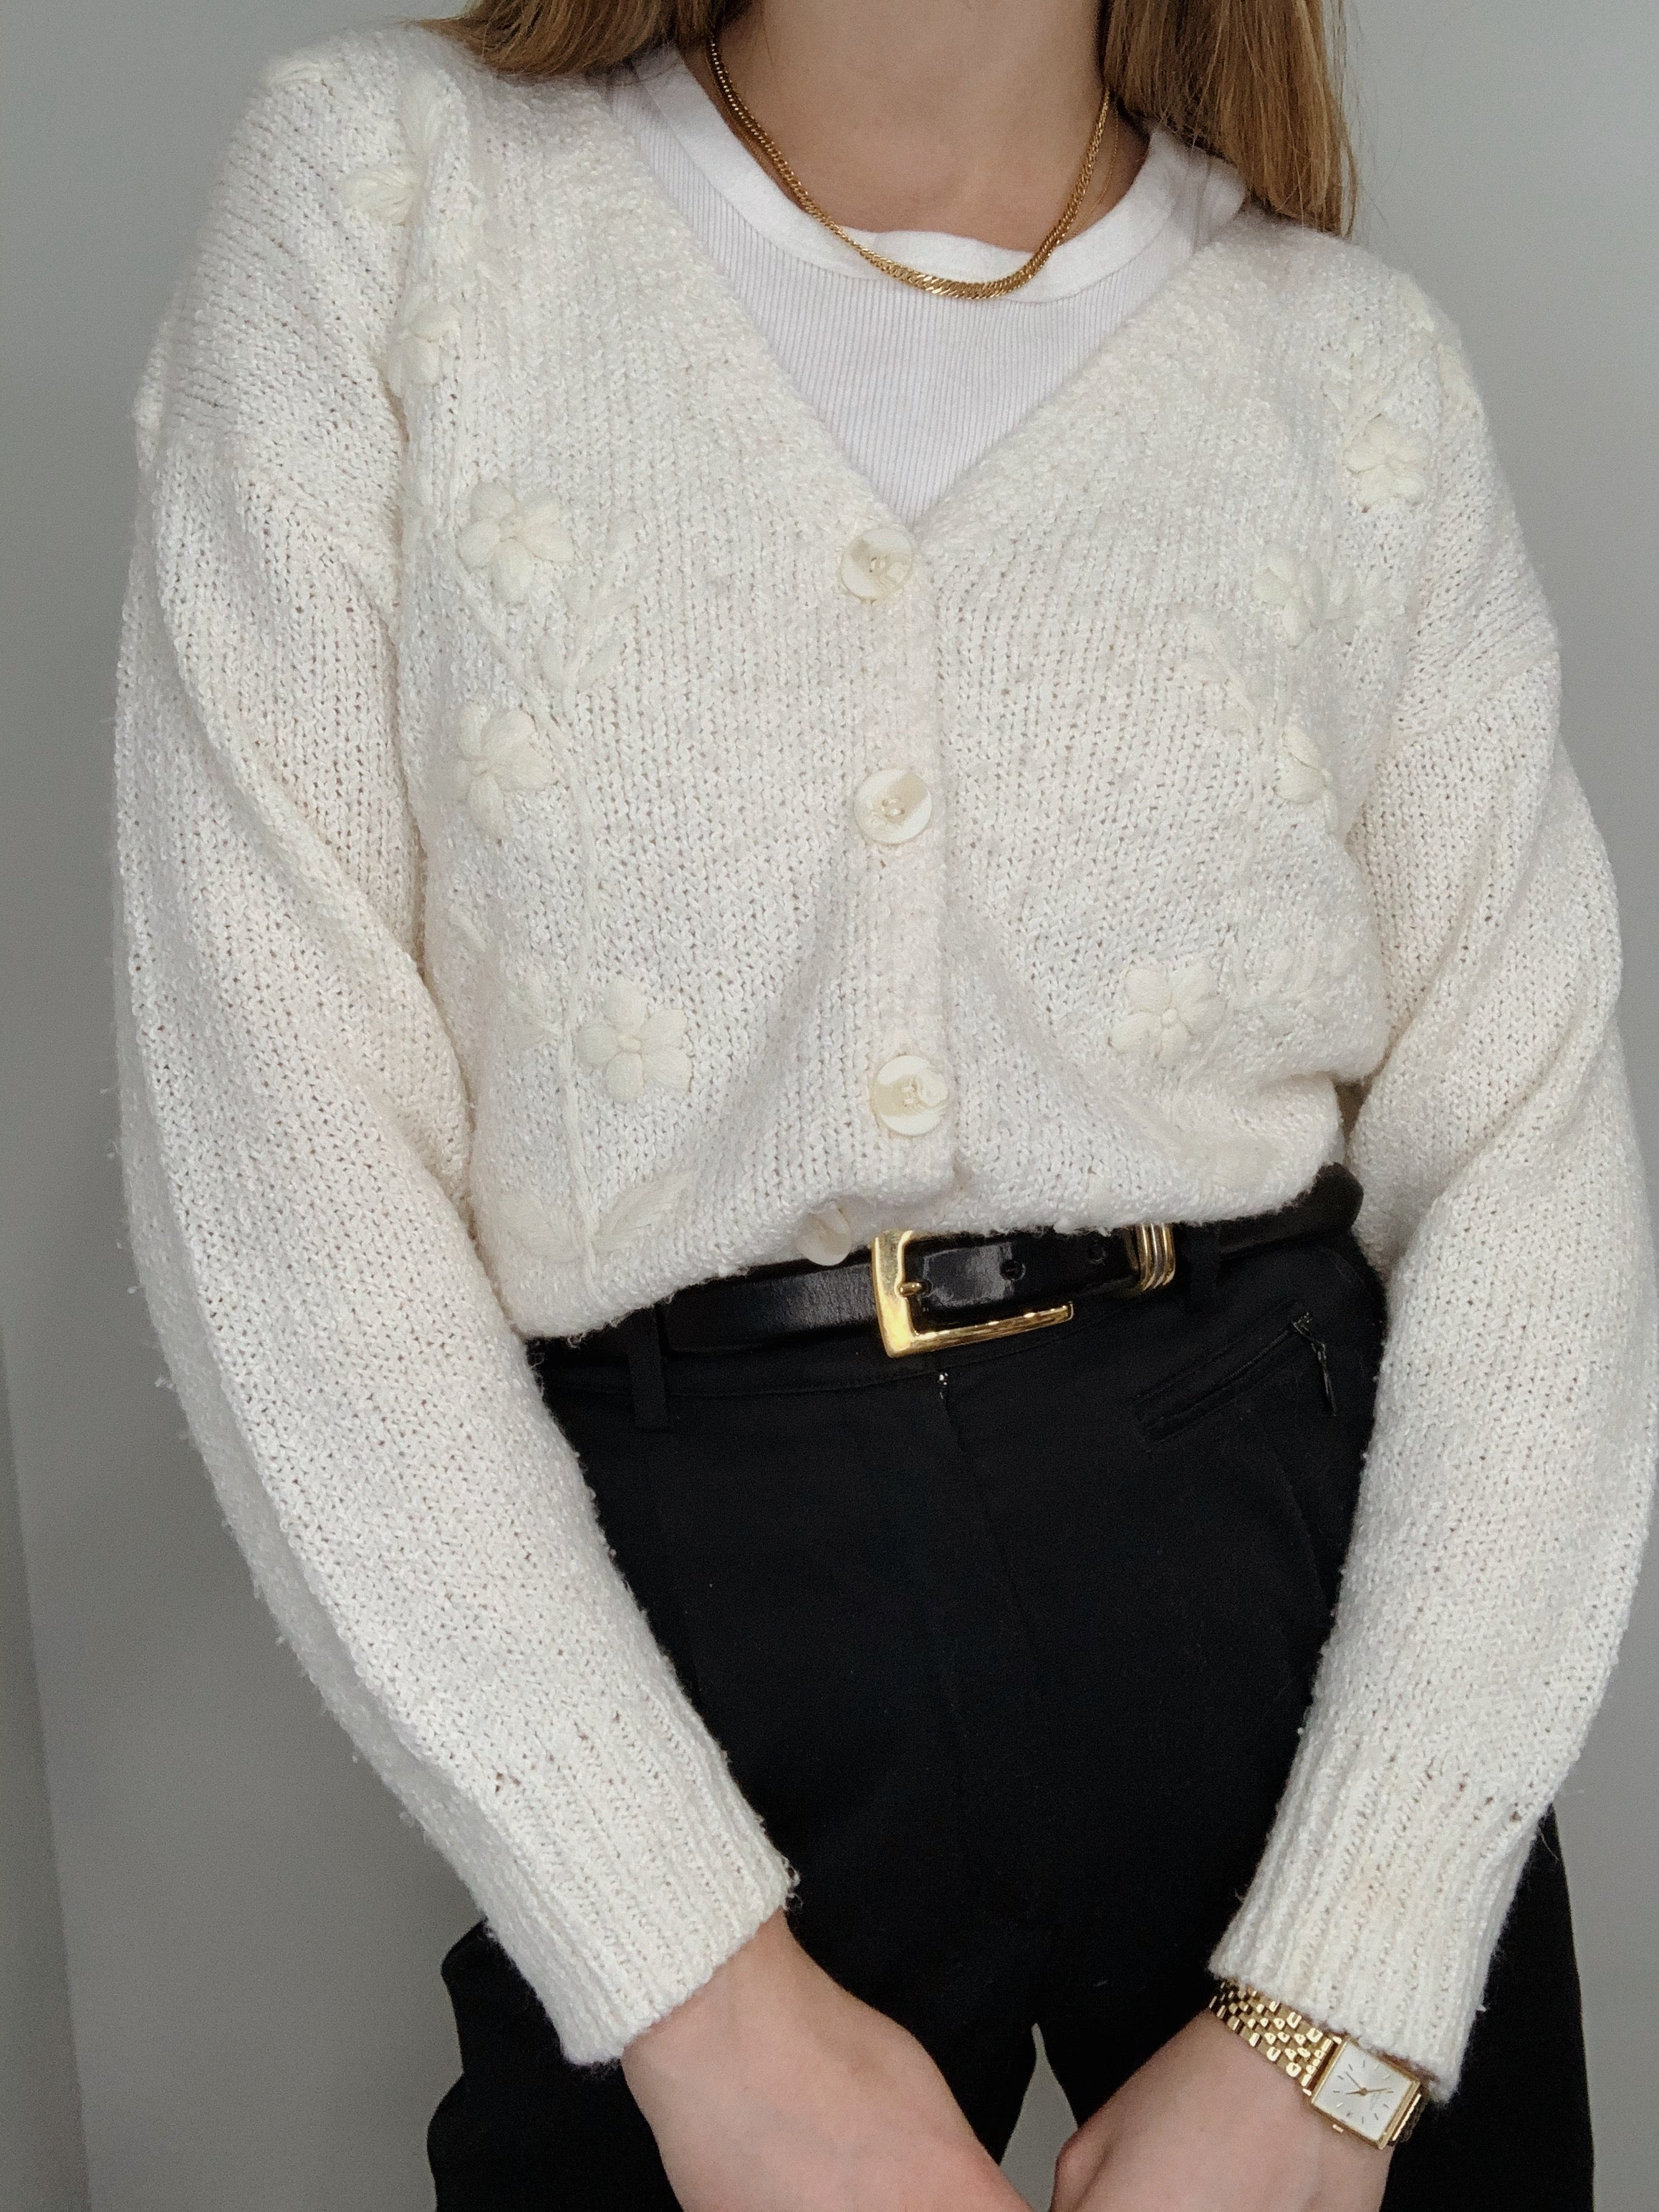 vintage, cream cardigan x crystal ashtray